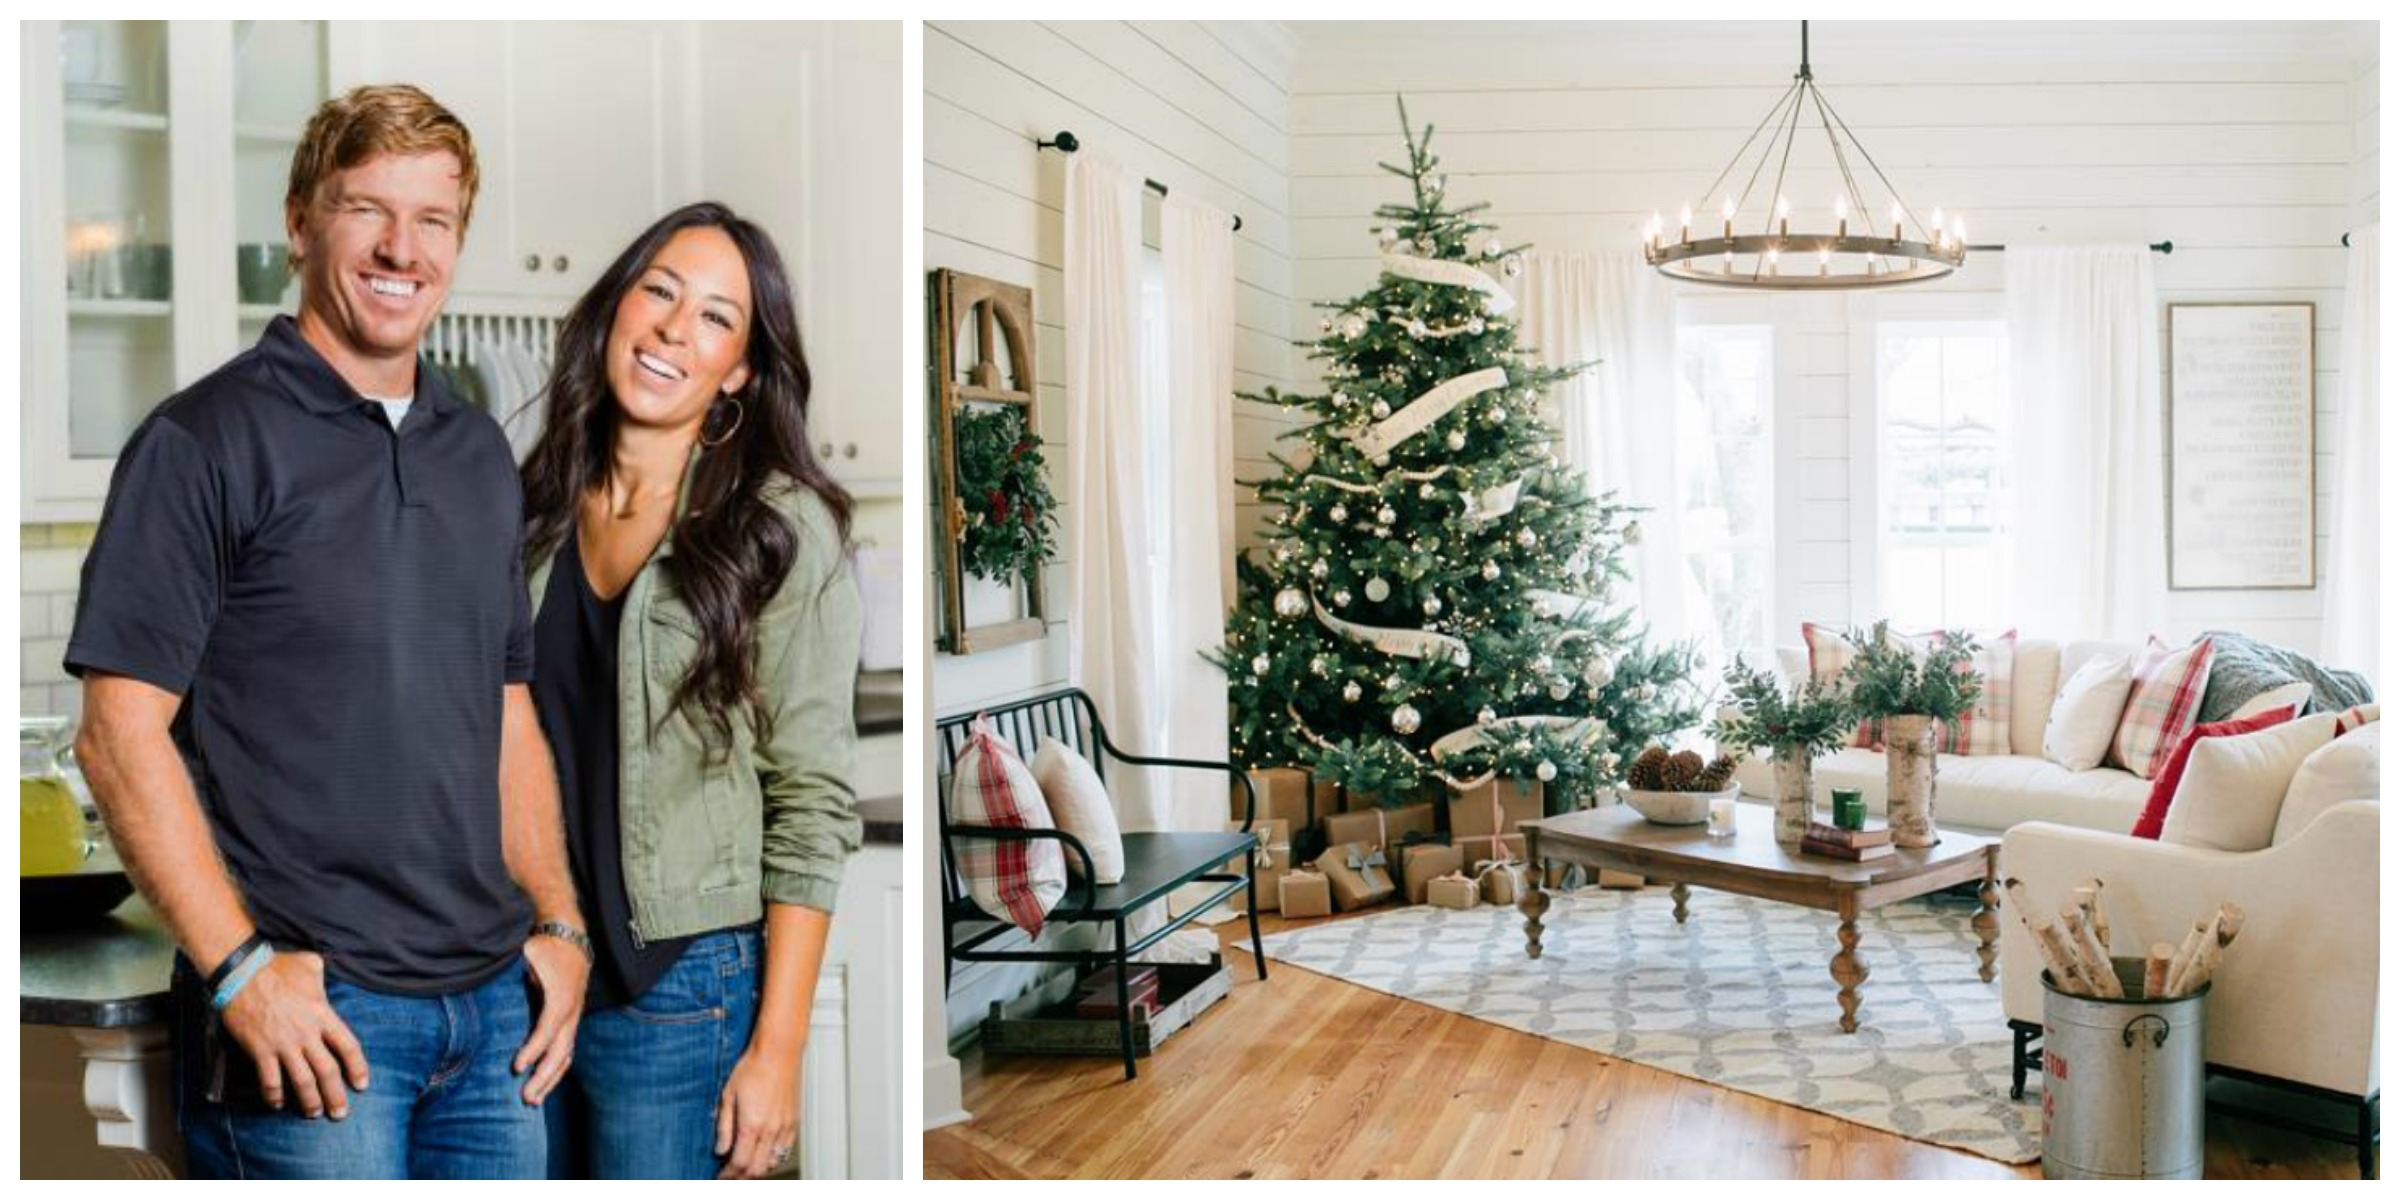 Magnolia house chip and joanna gaines bed breakfast for Chip and joanna gaines bed and breakfast